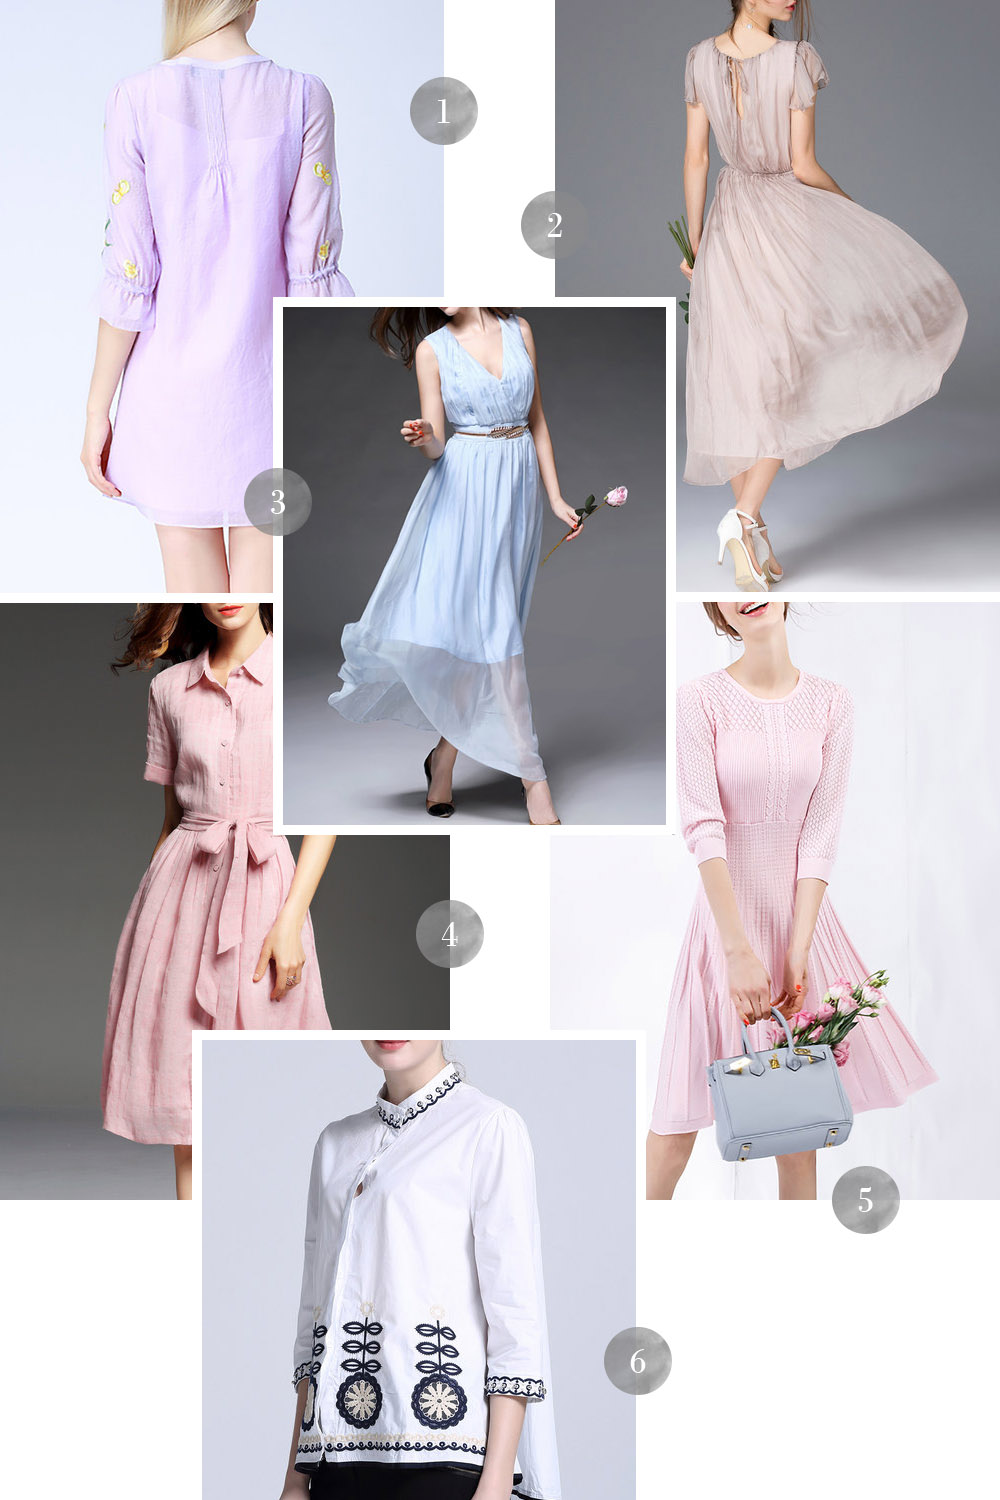 Wishlisting :: Summer Pastels